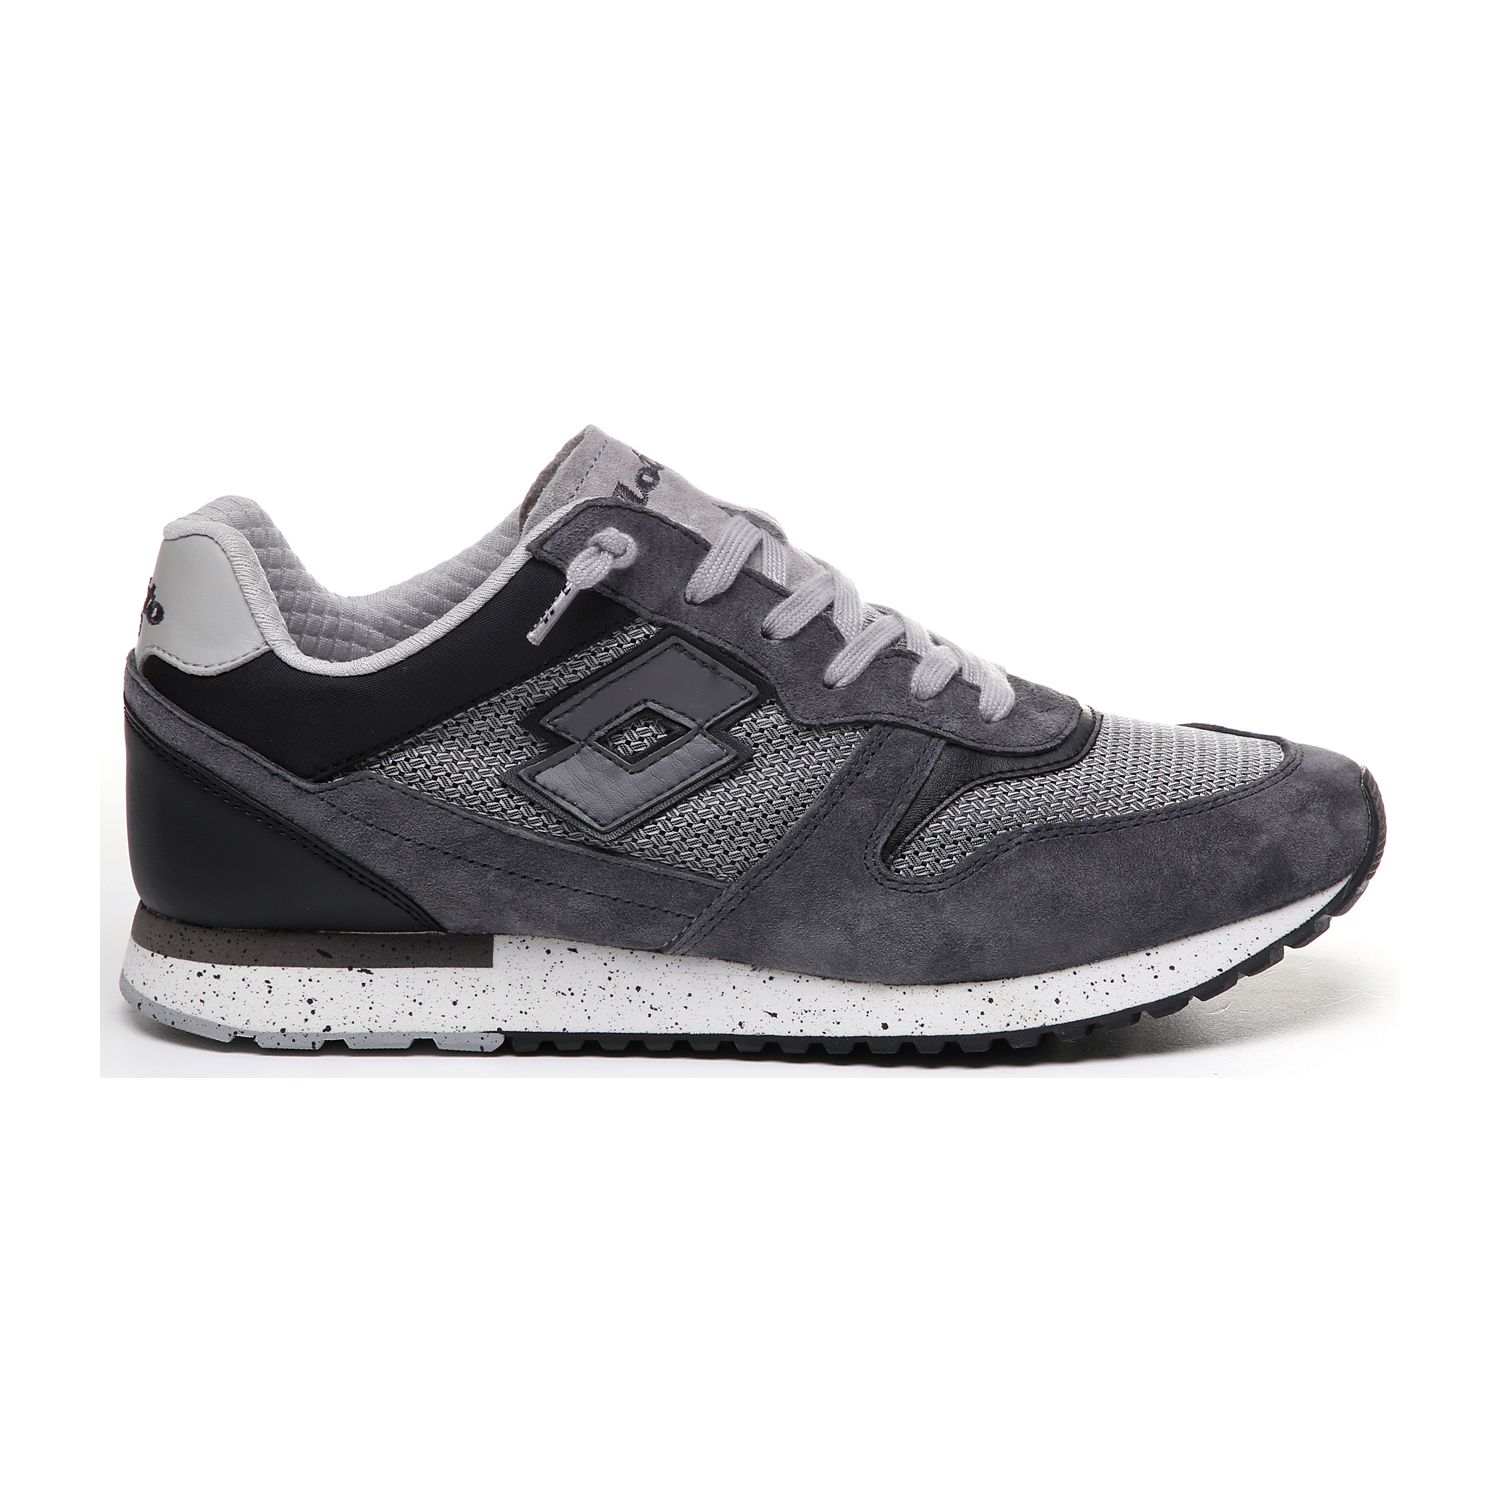 Italia Accessories For Lotto Sport And Footwear Clothing Sq5FxB6